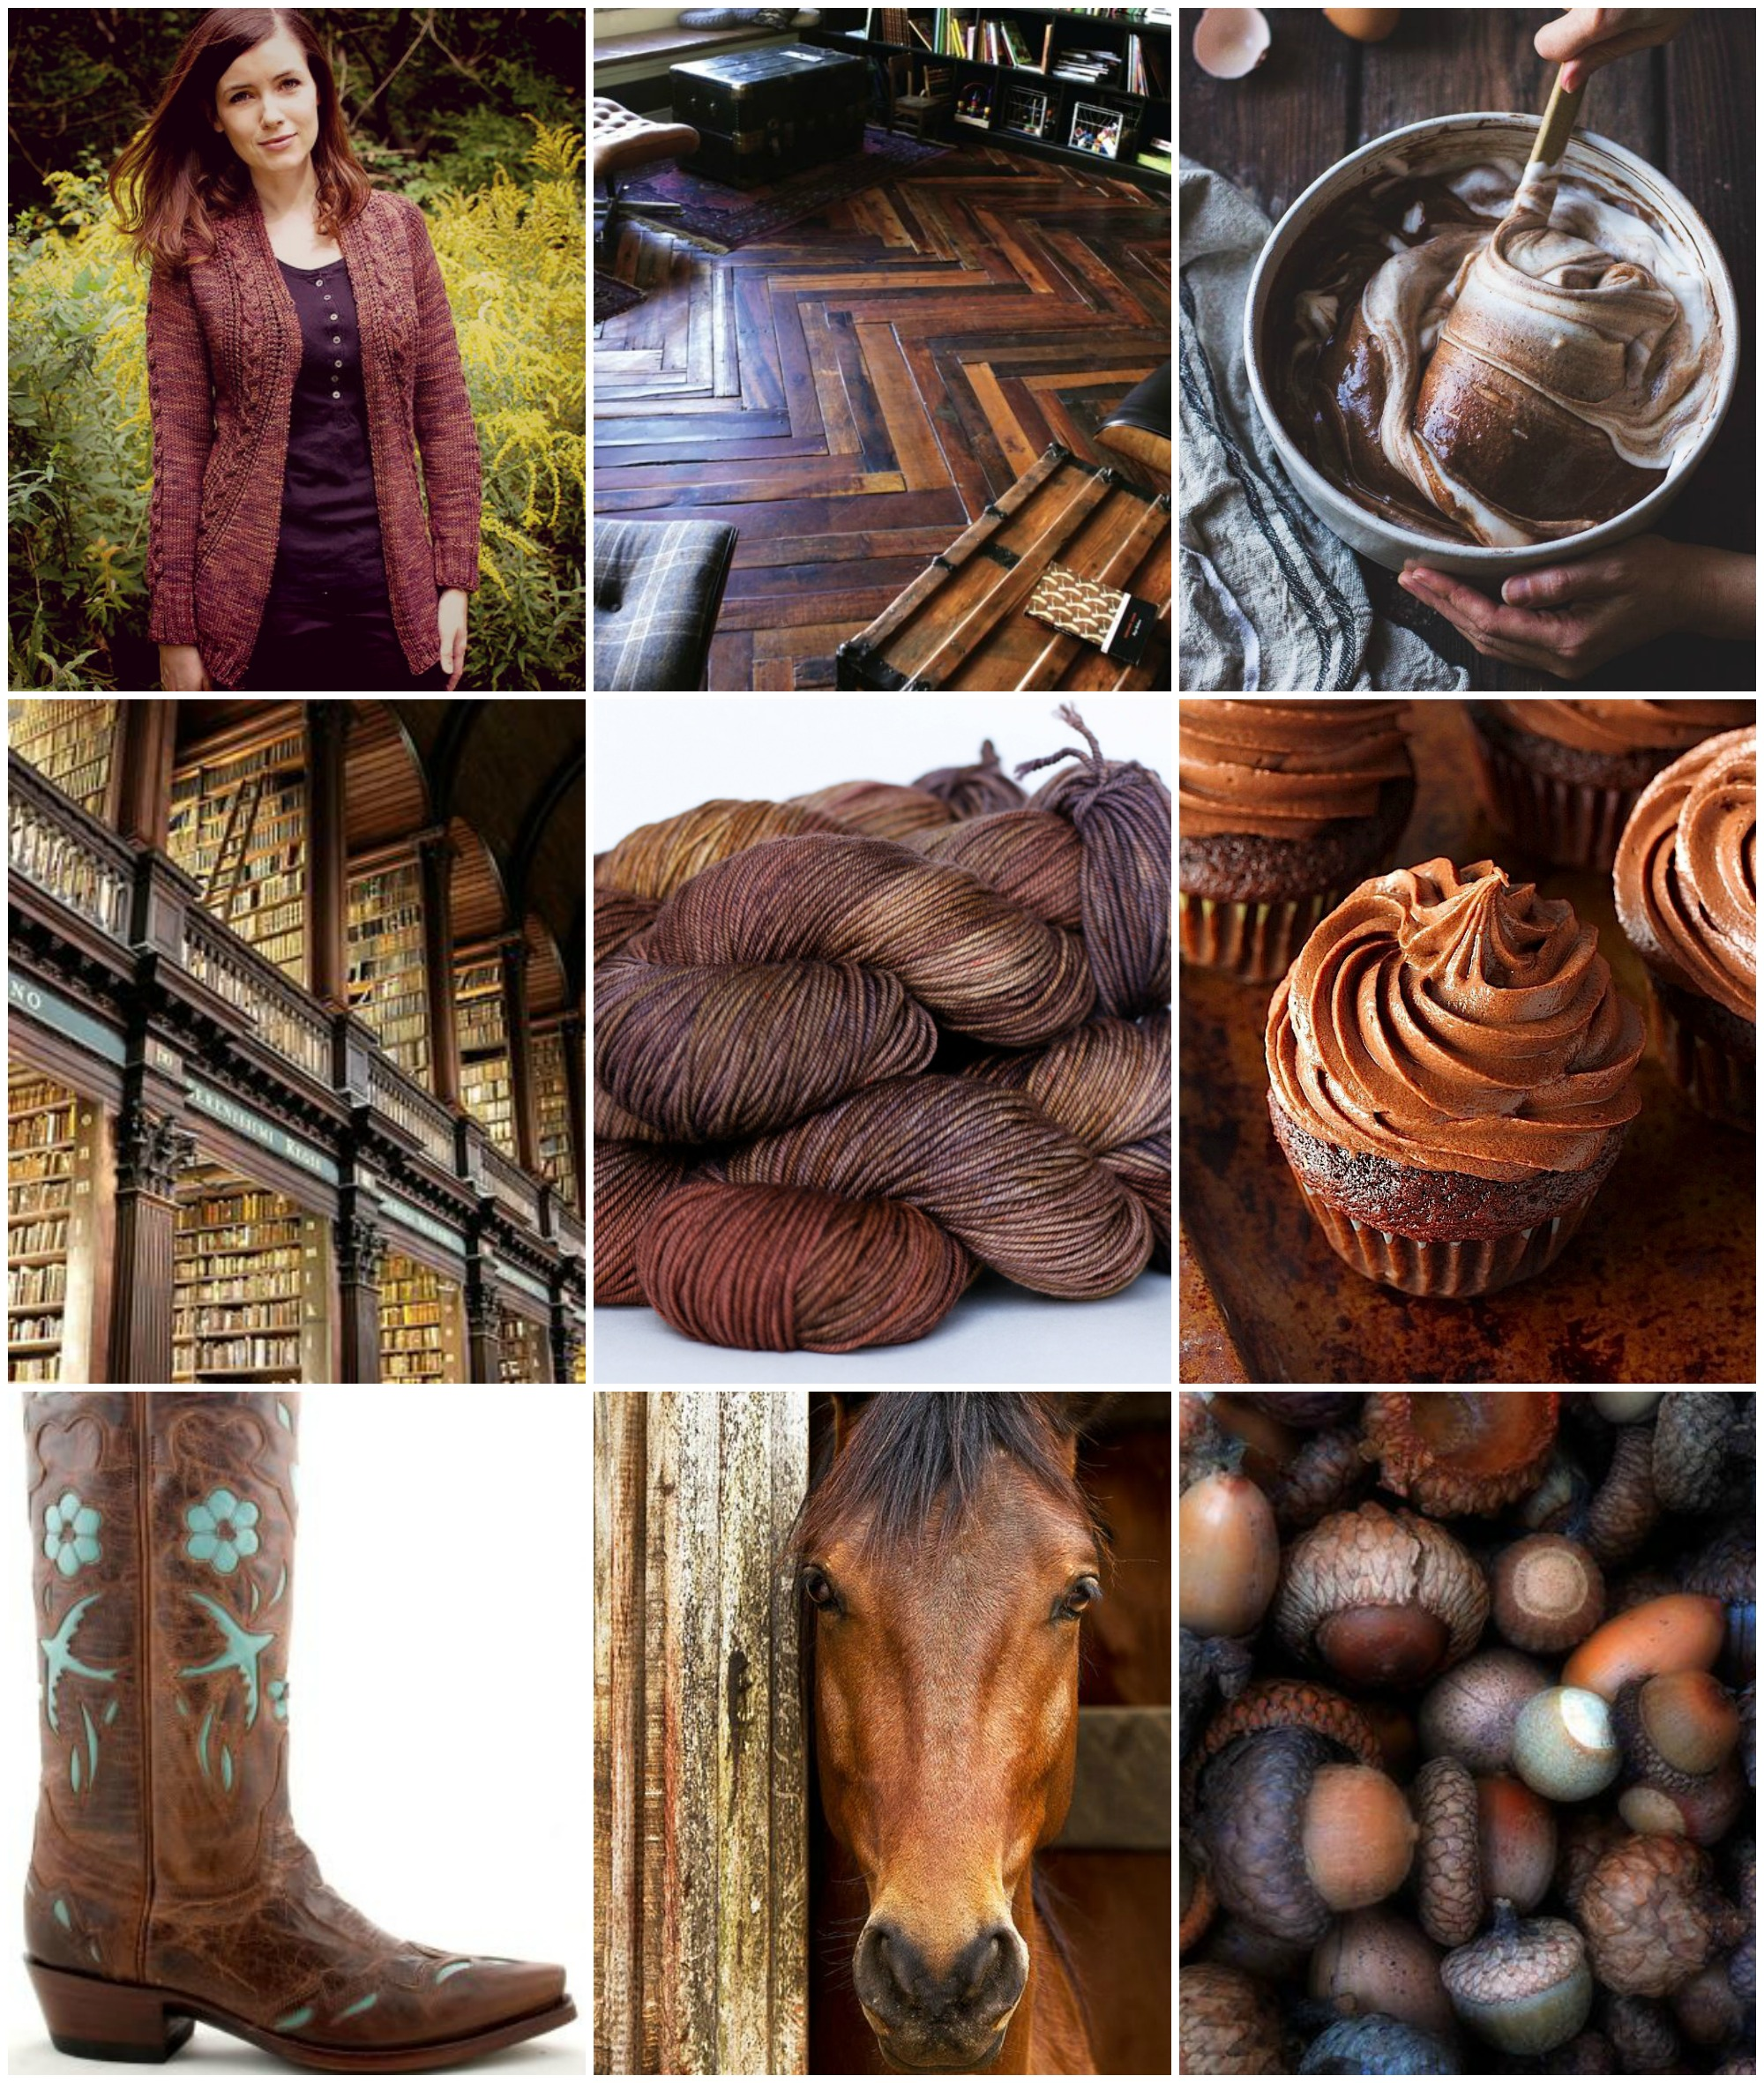 Sources, left to right, top top to bottom:  Knittedbliss' French Braid Cardigan  ,   Herringbone floors  ,  Chocolate Chestnut Cream Cake Batter ,   Library  , TFA Green Label Aran Weight in  Chestnut ,  Cupcakes ,   Cowboy Boot  ,   Horse  ,   Acorns  ,